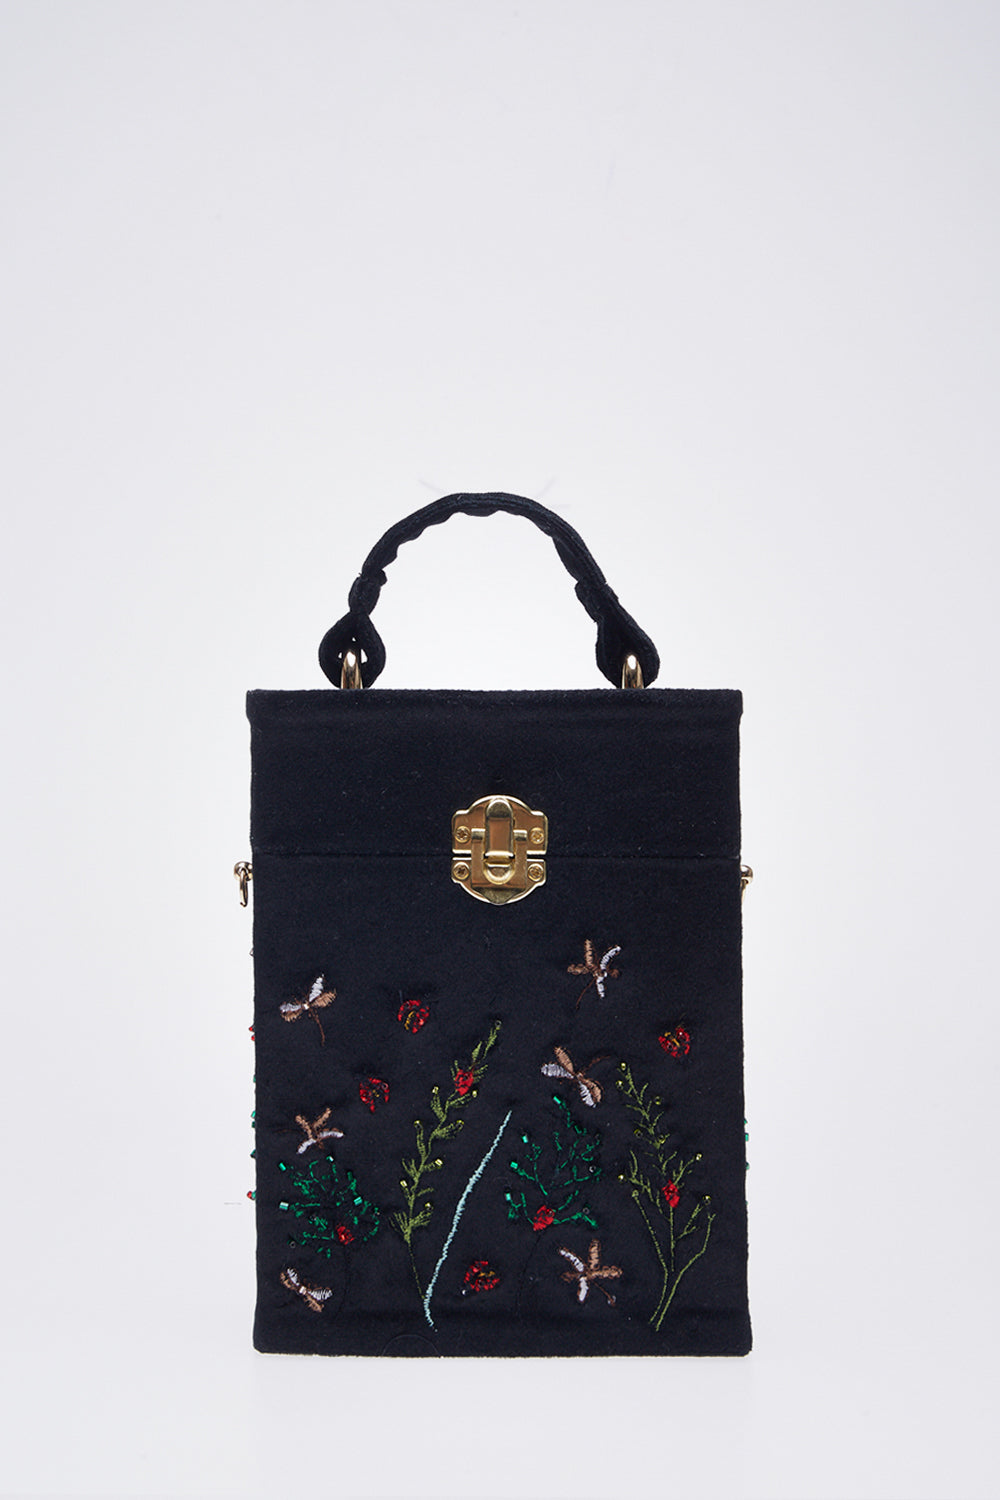 Ladybug Bag in Black